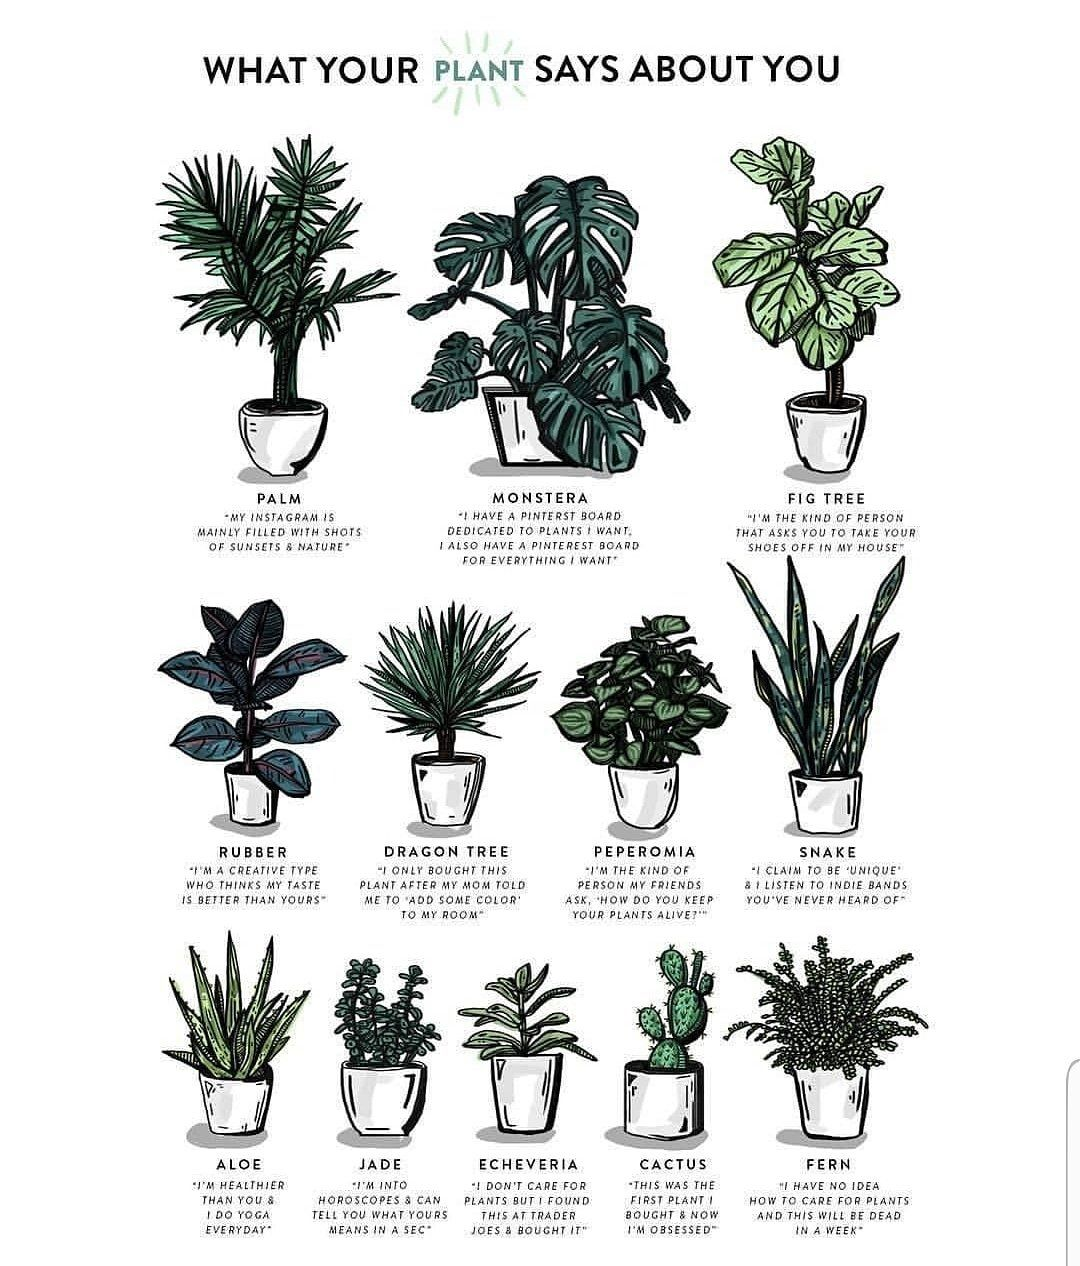 28+ What temperature should i bring my plants inside information